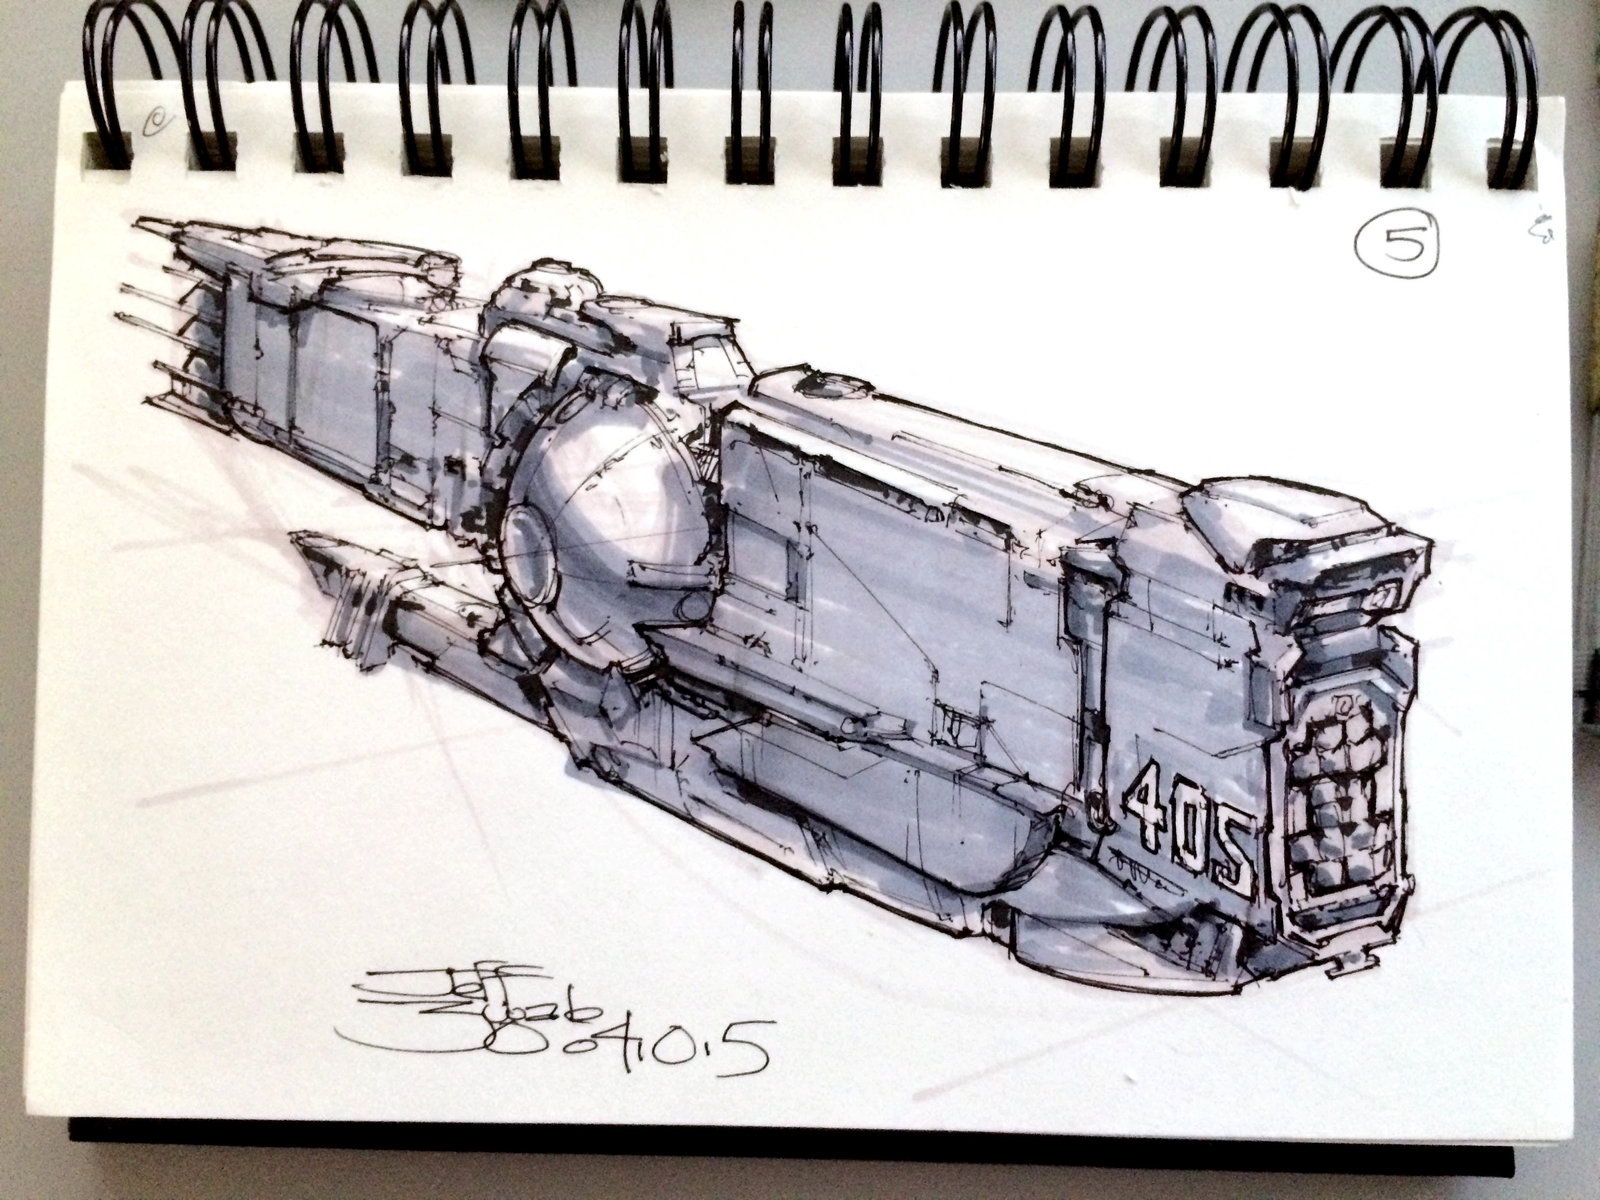 SpaceshipADay 005